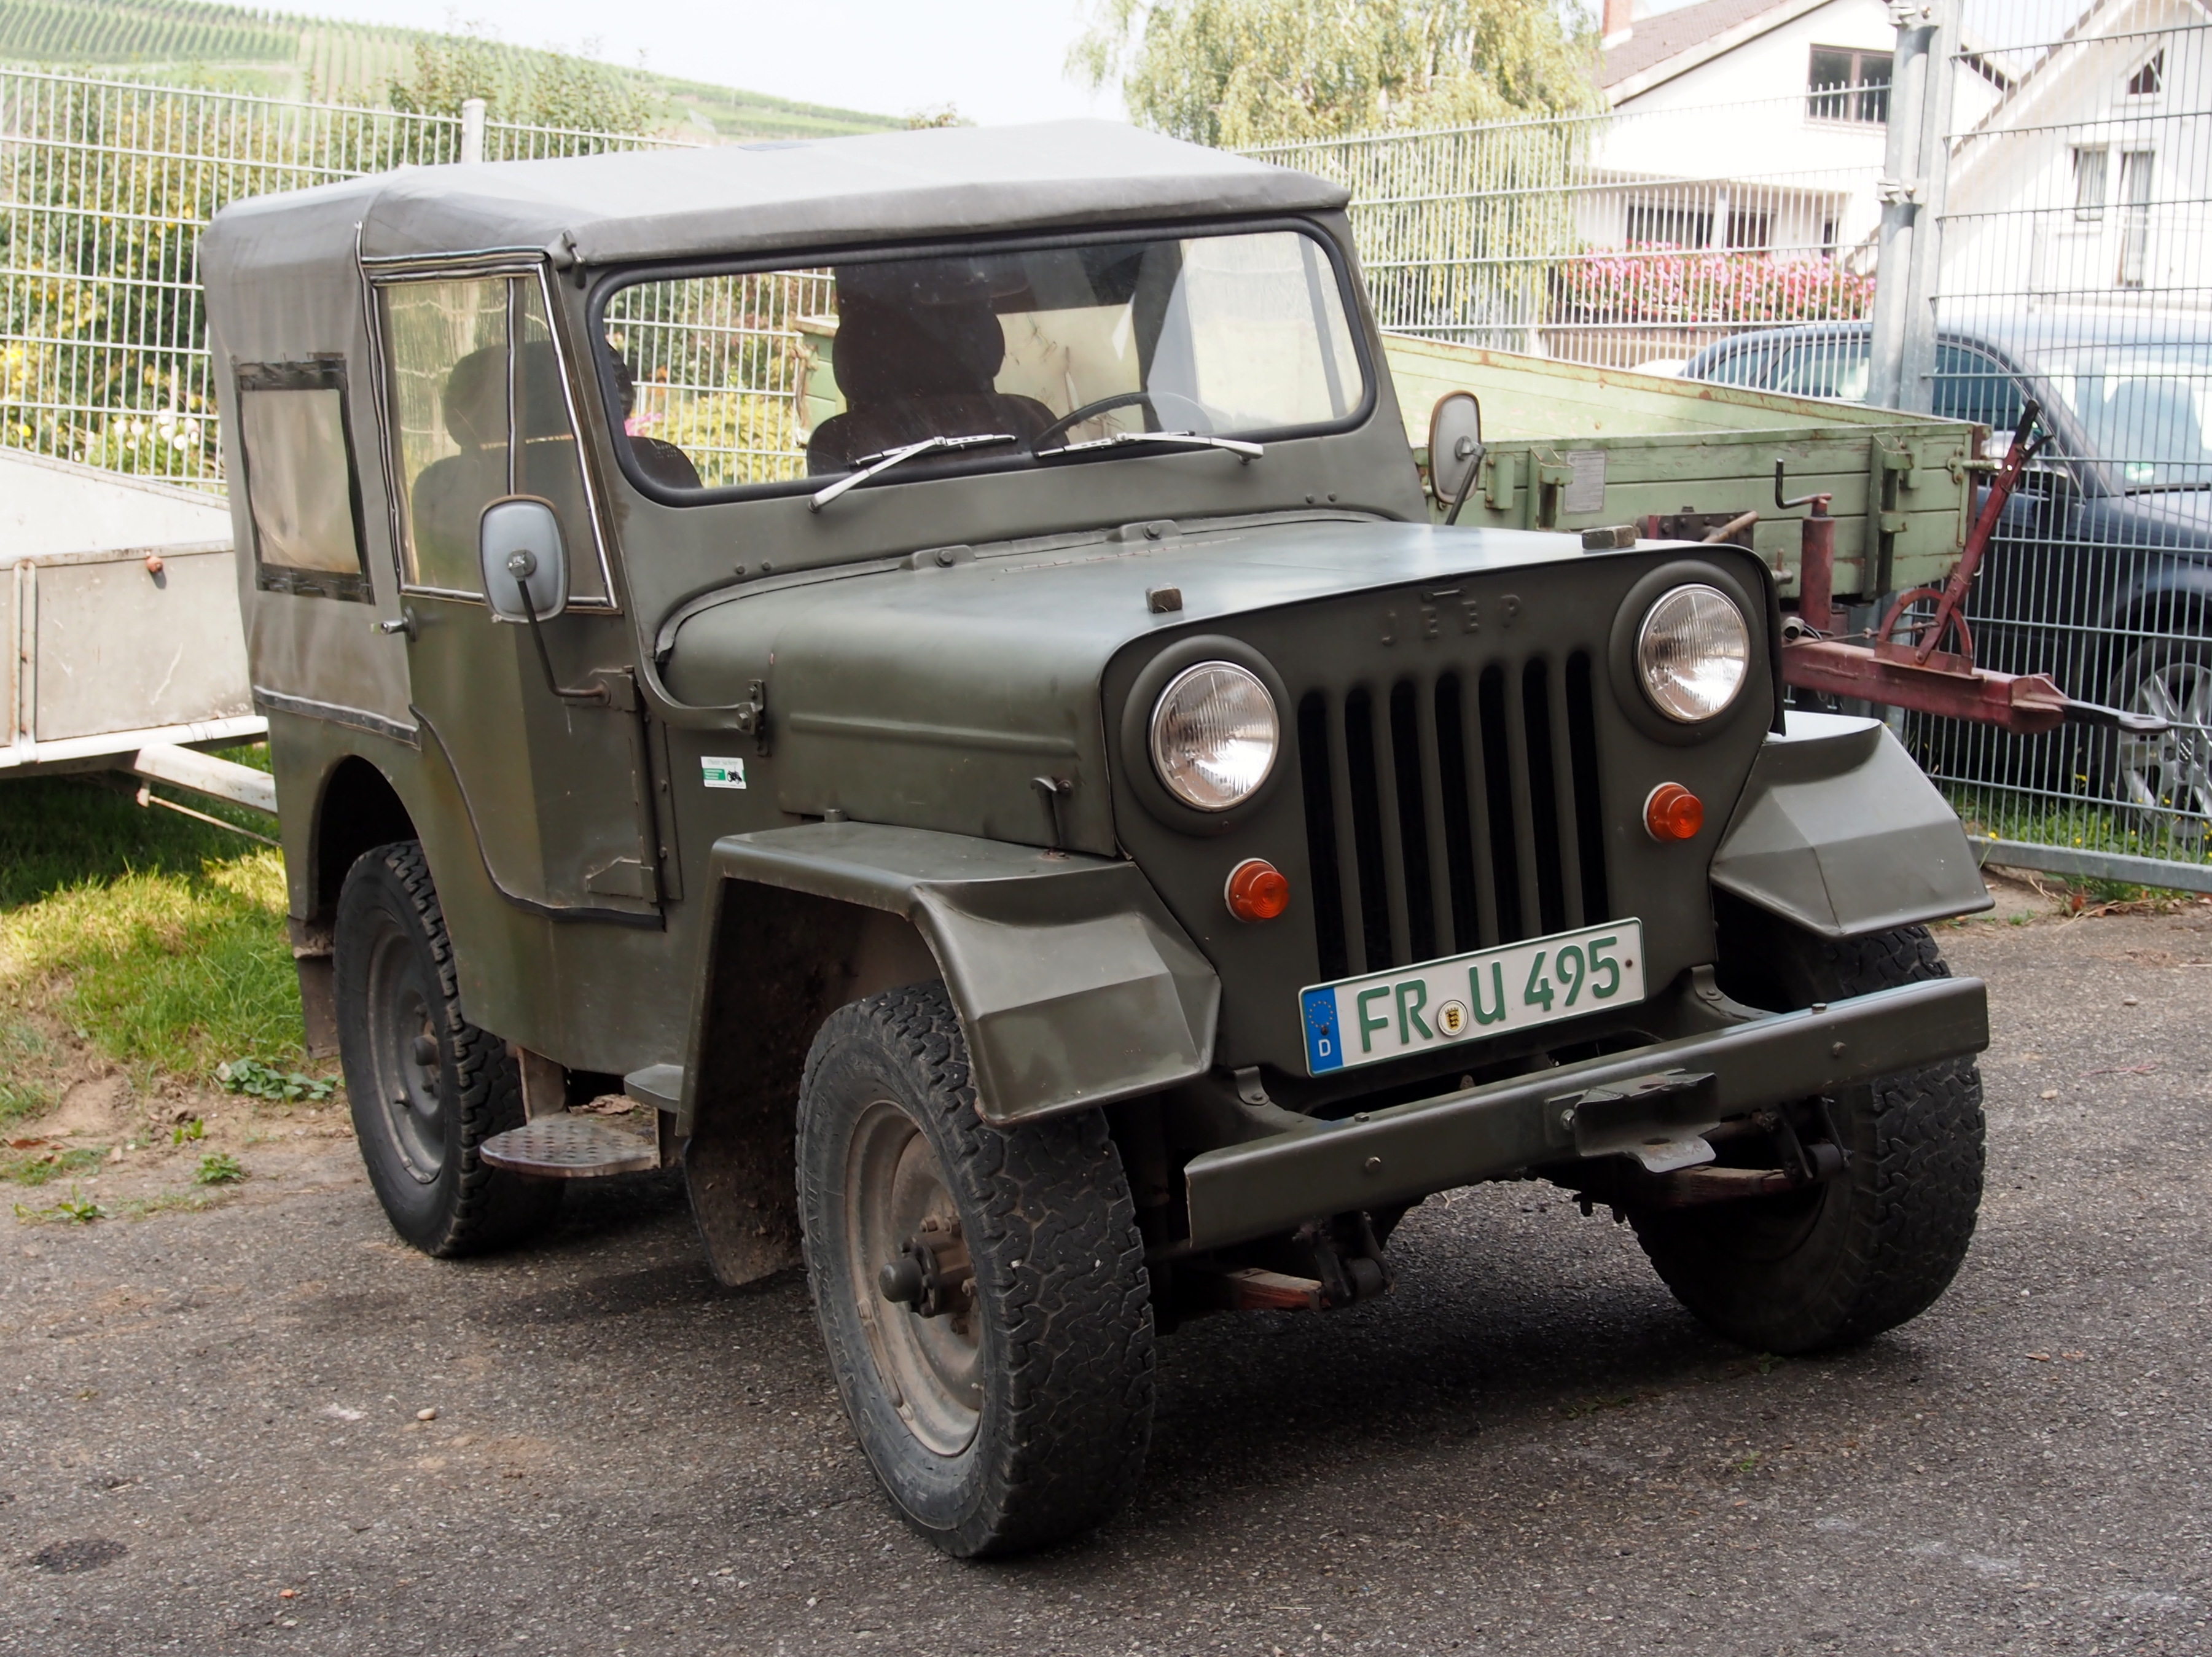 File:Old Jeep in France, pic2.JPG - Wikimedia Commons